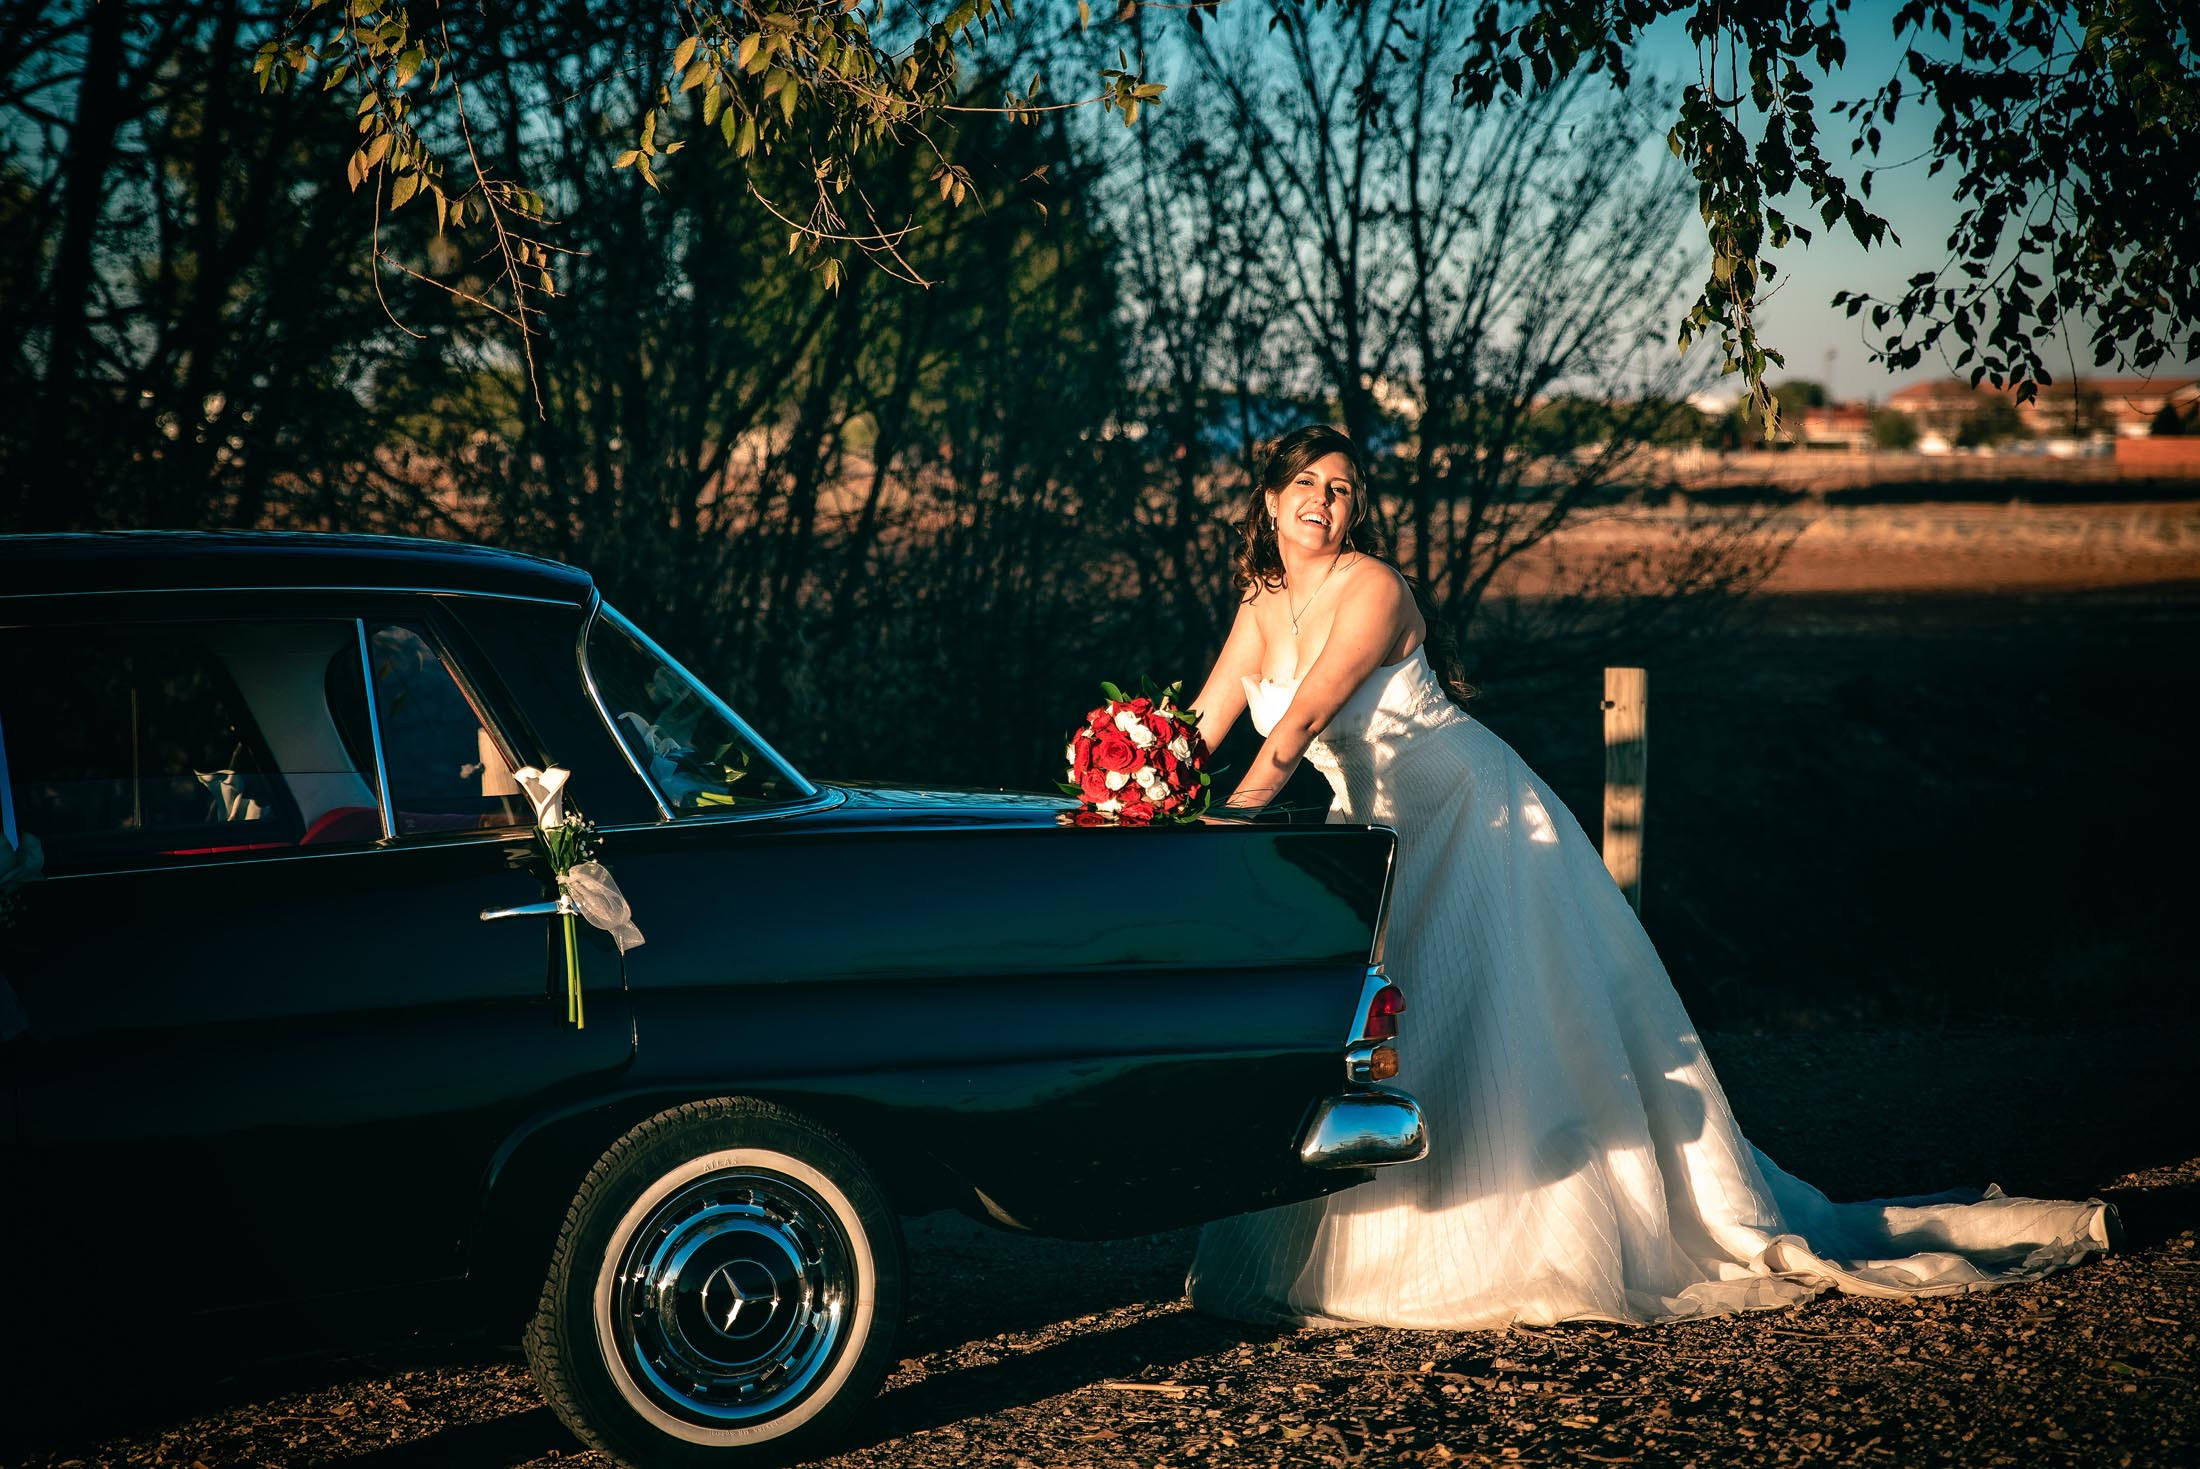 Boda de Antonio y Maite - Membrilla-0453-Edit